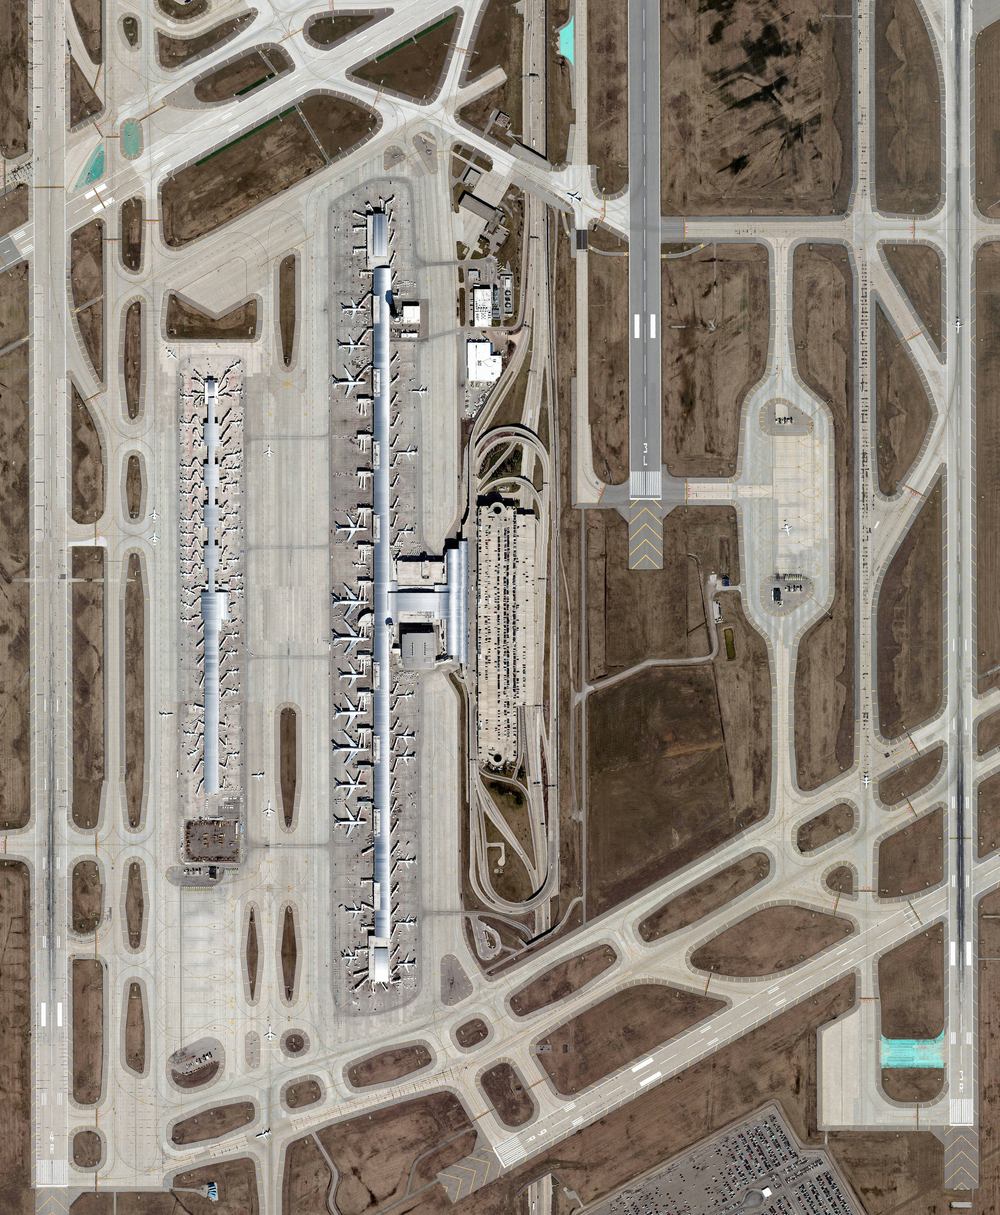 11/27/2015 Detroit Metropolitan Airport Romulus, Michigan 42°12′45″N 083°21′12″W   Detroit Metropolitan Airport covers more than 11 square miles in Romulus, Michigan. Concourse A at McNamara Terminal, seen here at left, is the world's second-longest airport terminal building, extending a length of one mile (Kansai Airport in Japan has a 1.7 mile long terminal). Detroit Metro is the 16th busiest facility in the United States, serving more than 32 million passengers each year.